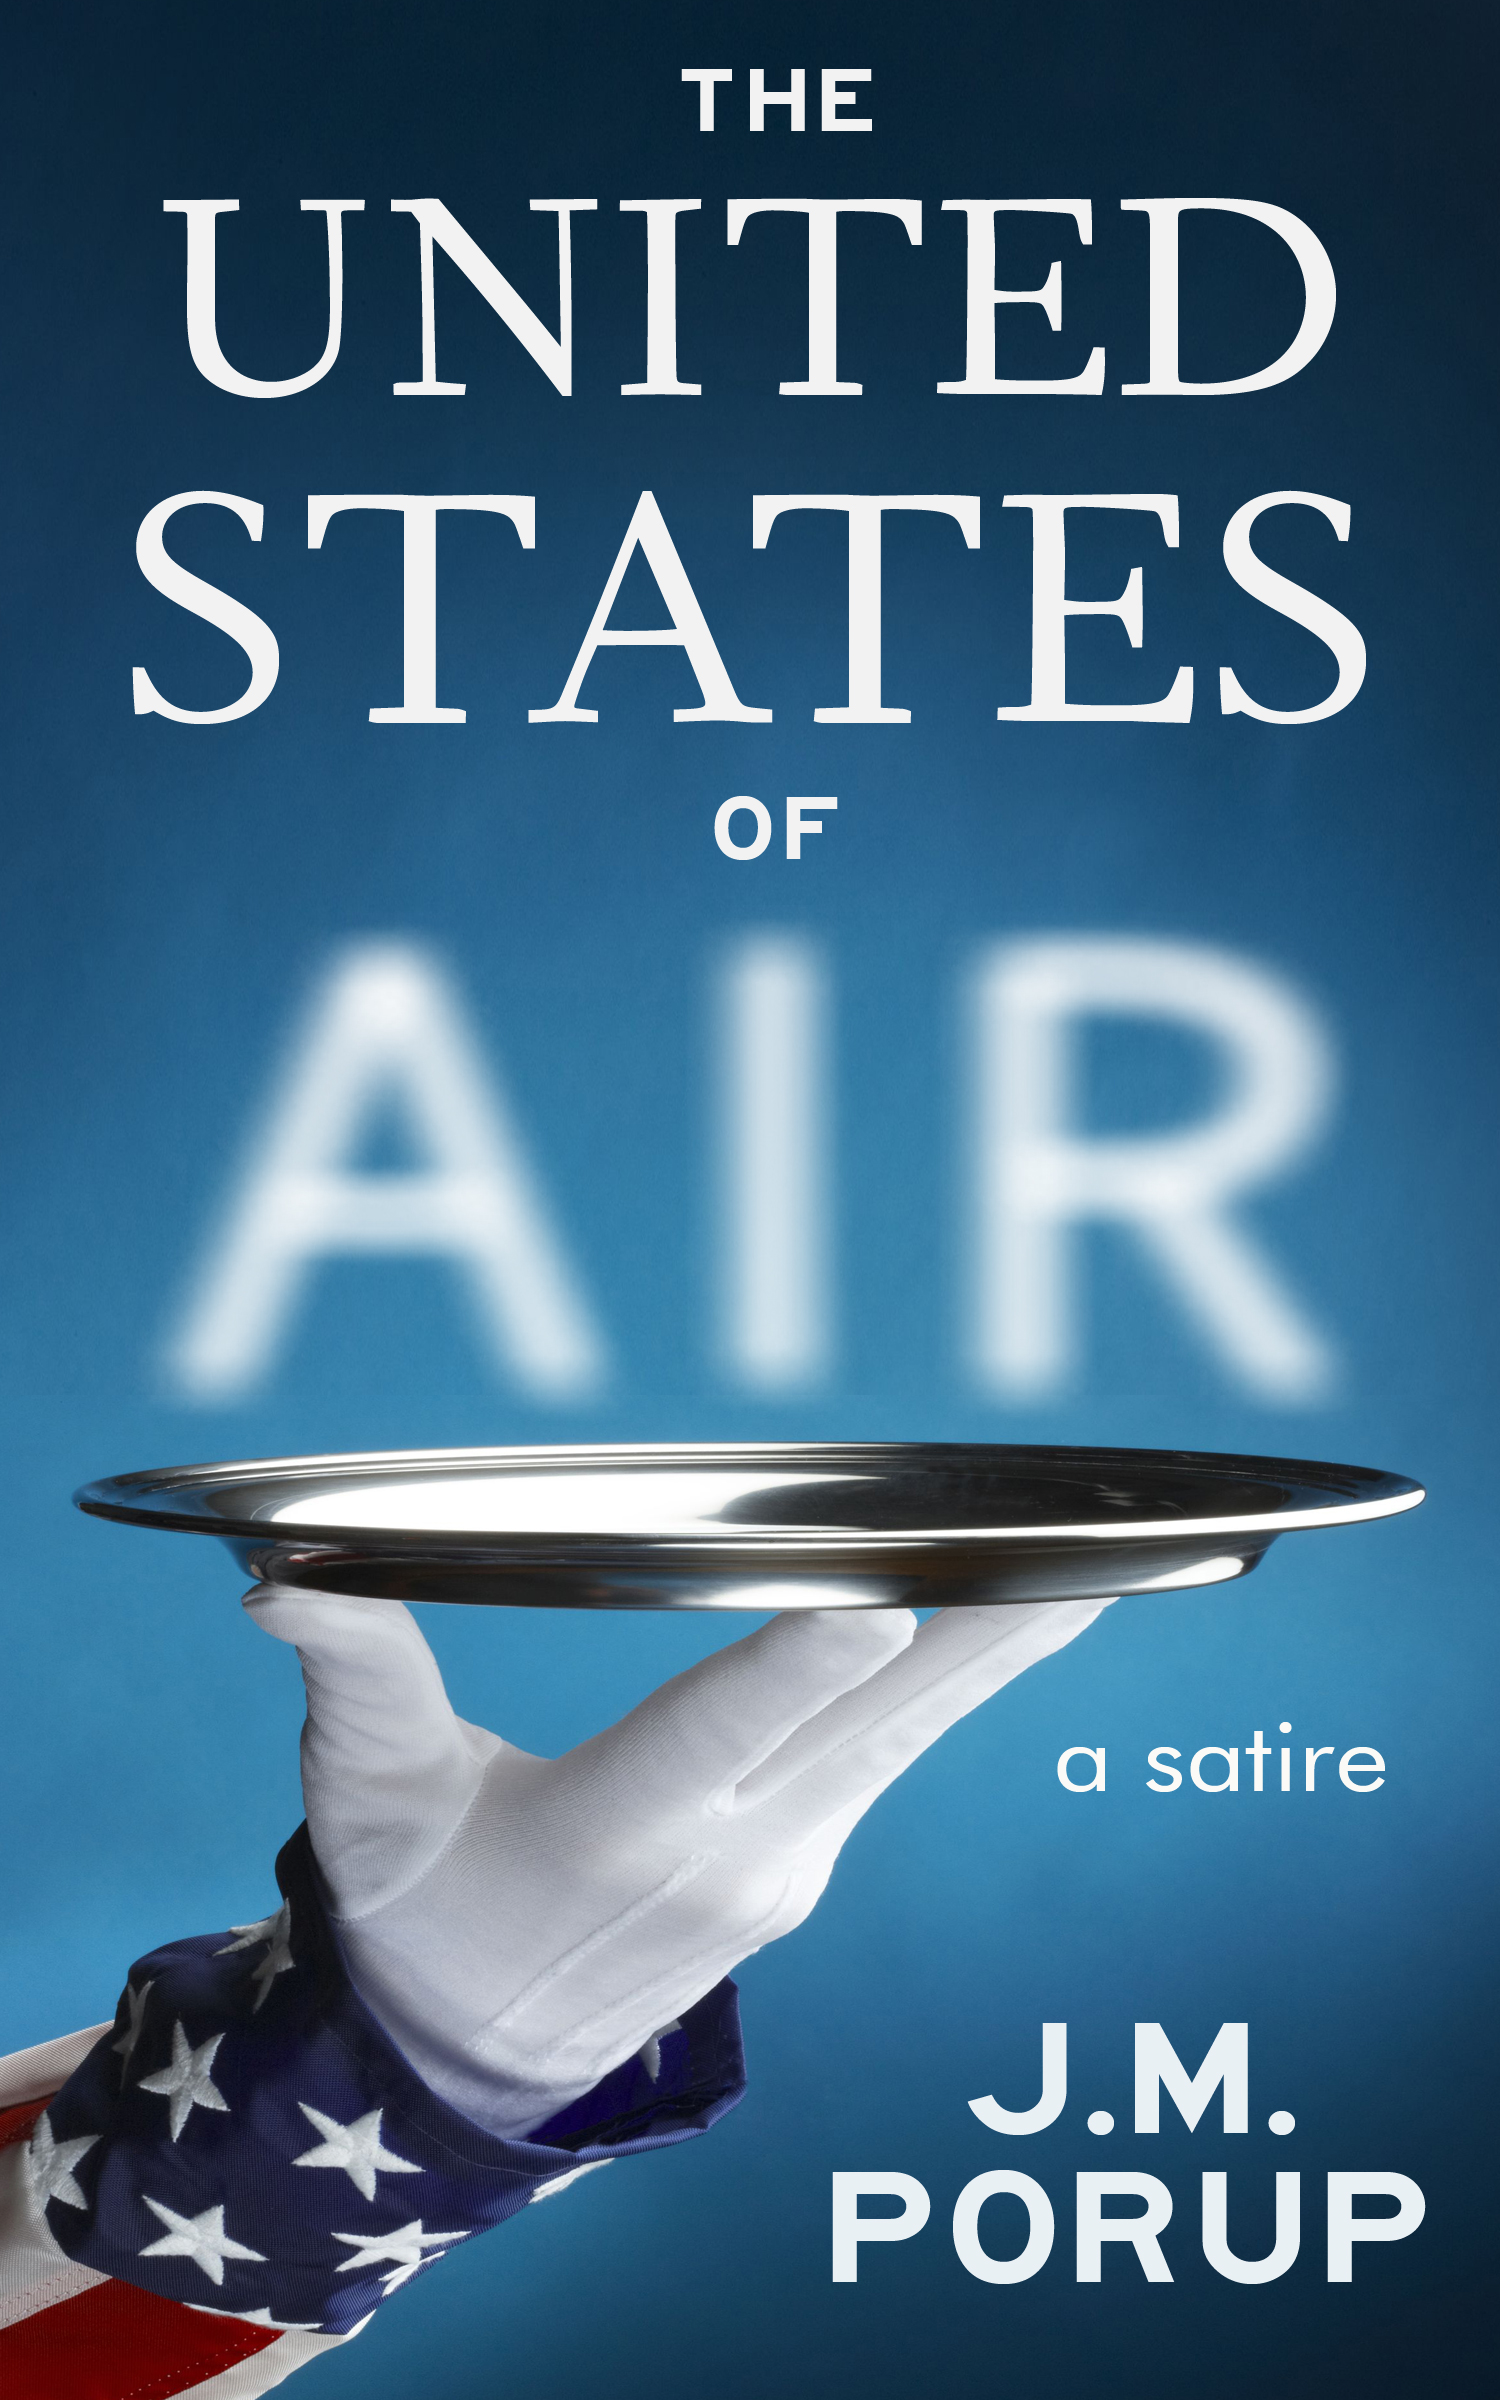 The United States of Air By: J.M. Porup